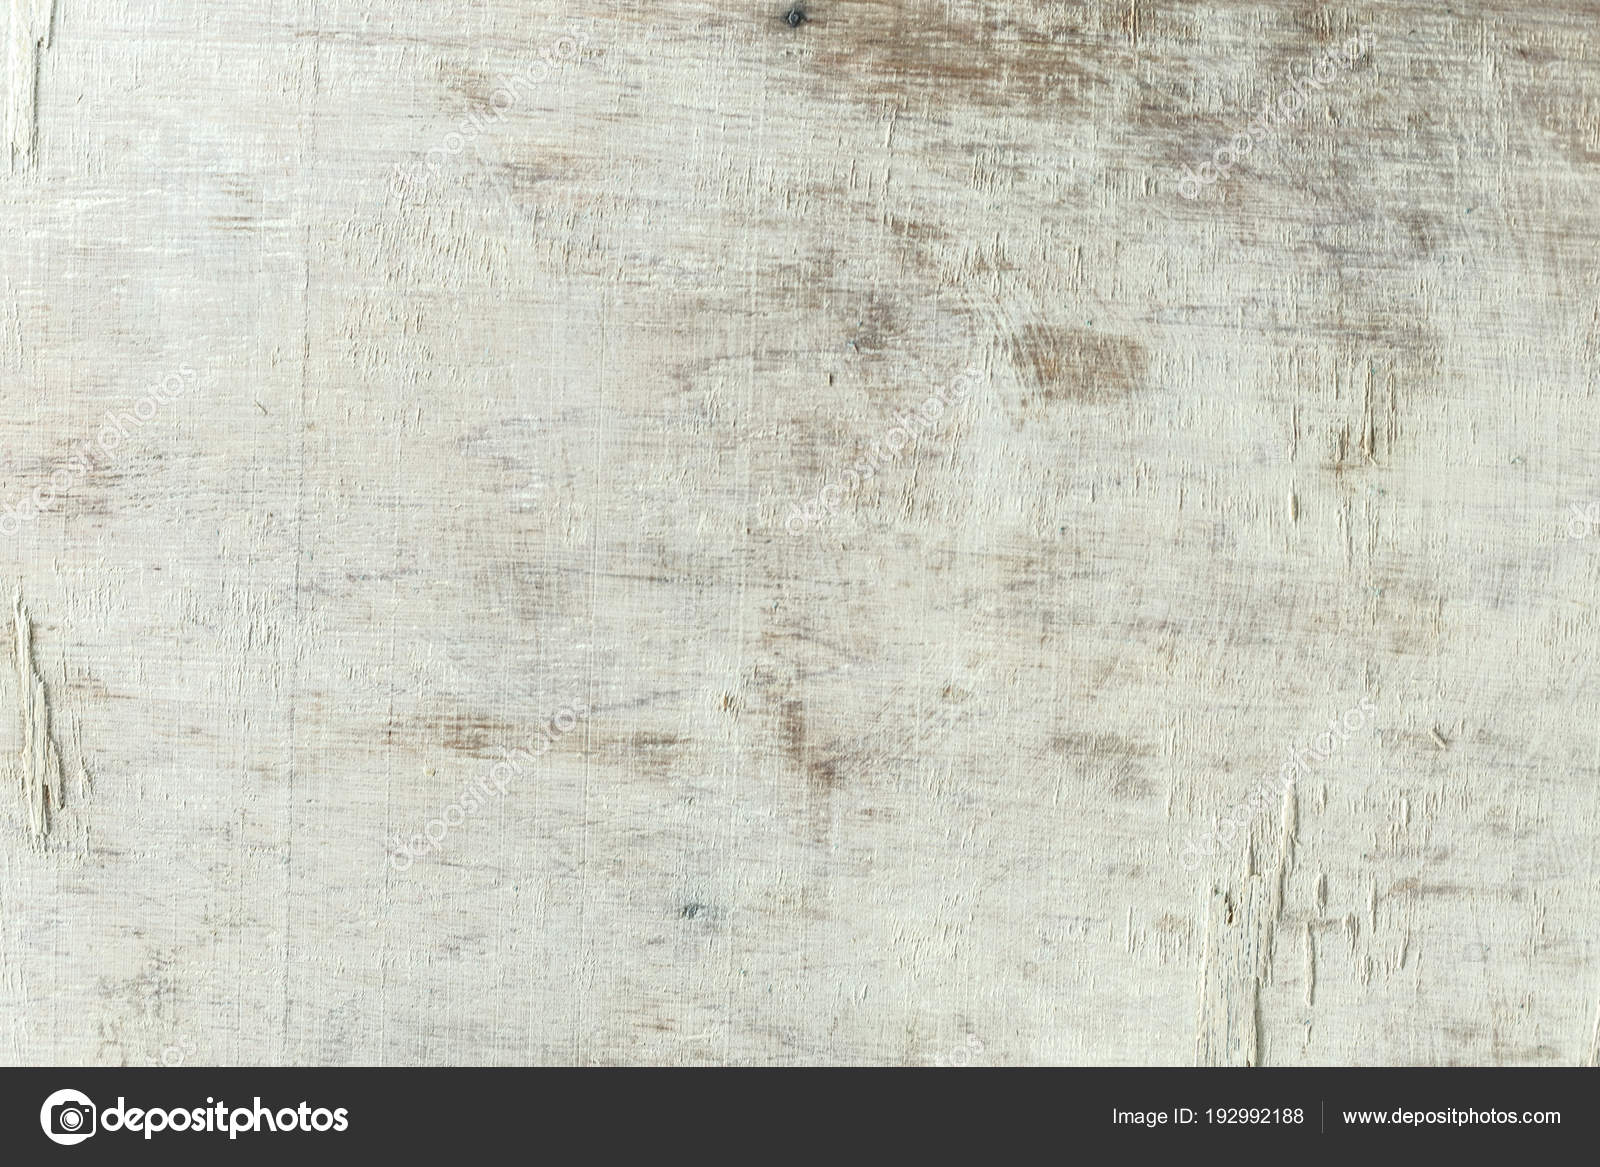 White Wood Old Plank Wooden Wall Background Rustic White Wood